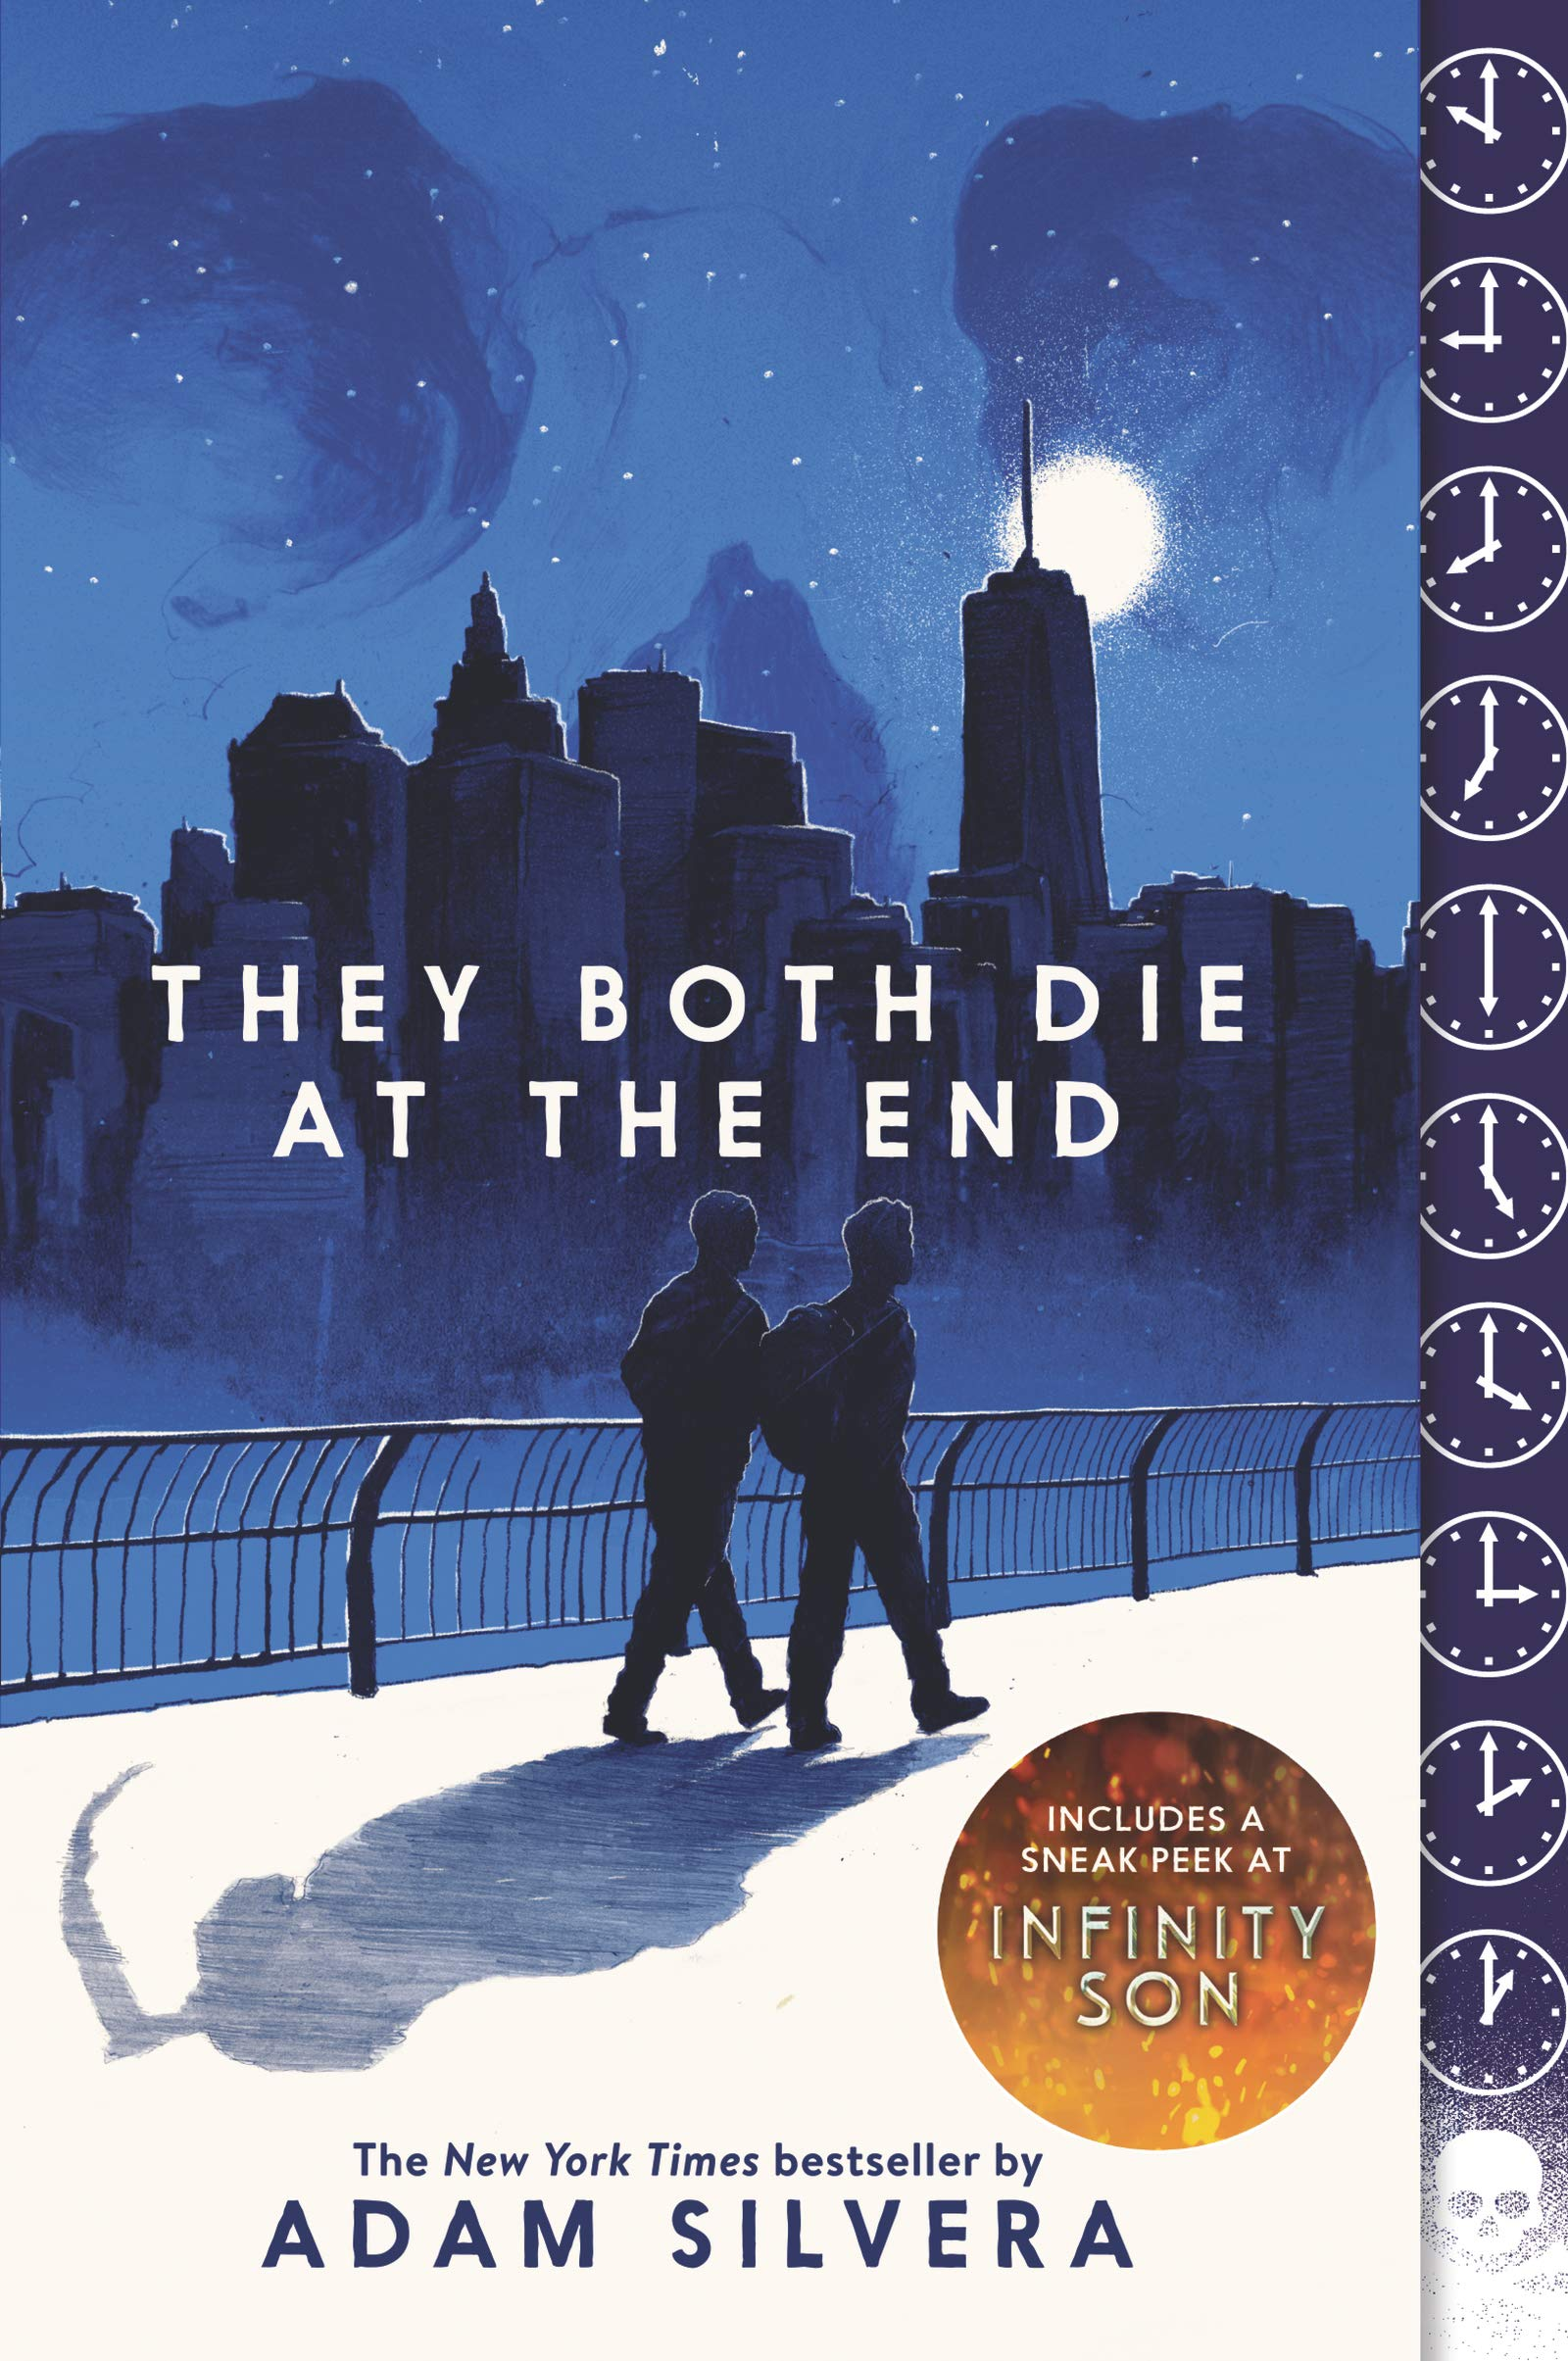 Buy They Both Die at the End Book Online at Low Prices in India | They Both  Die at the End Reviews & Ratings - Amazon.in